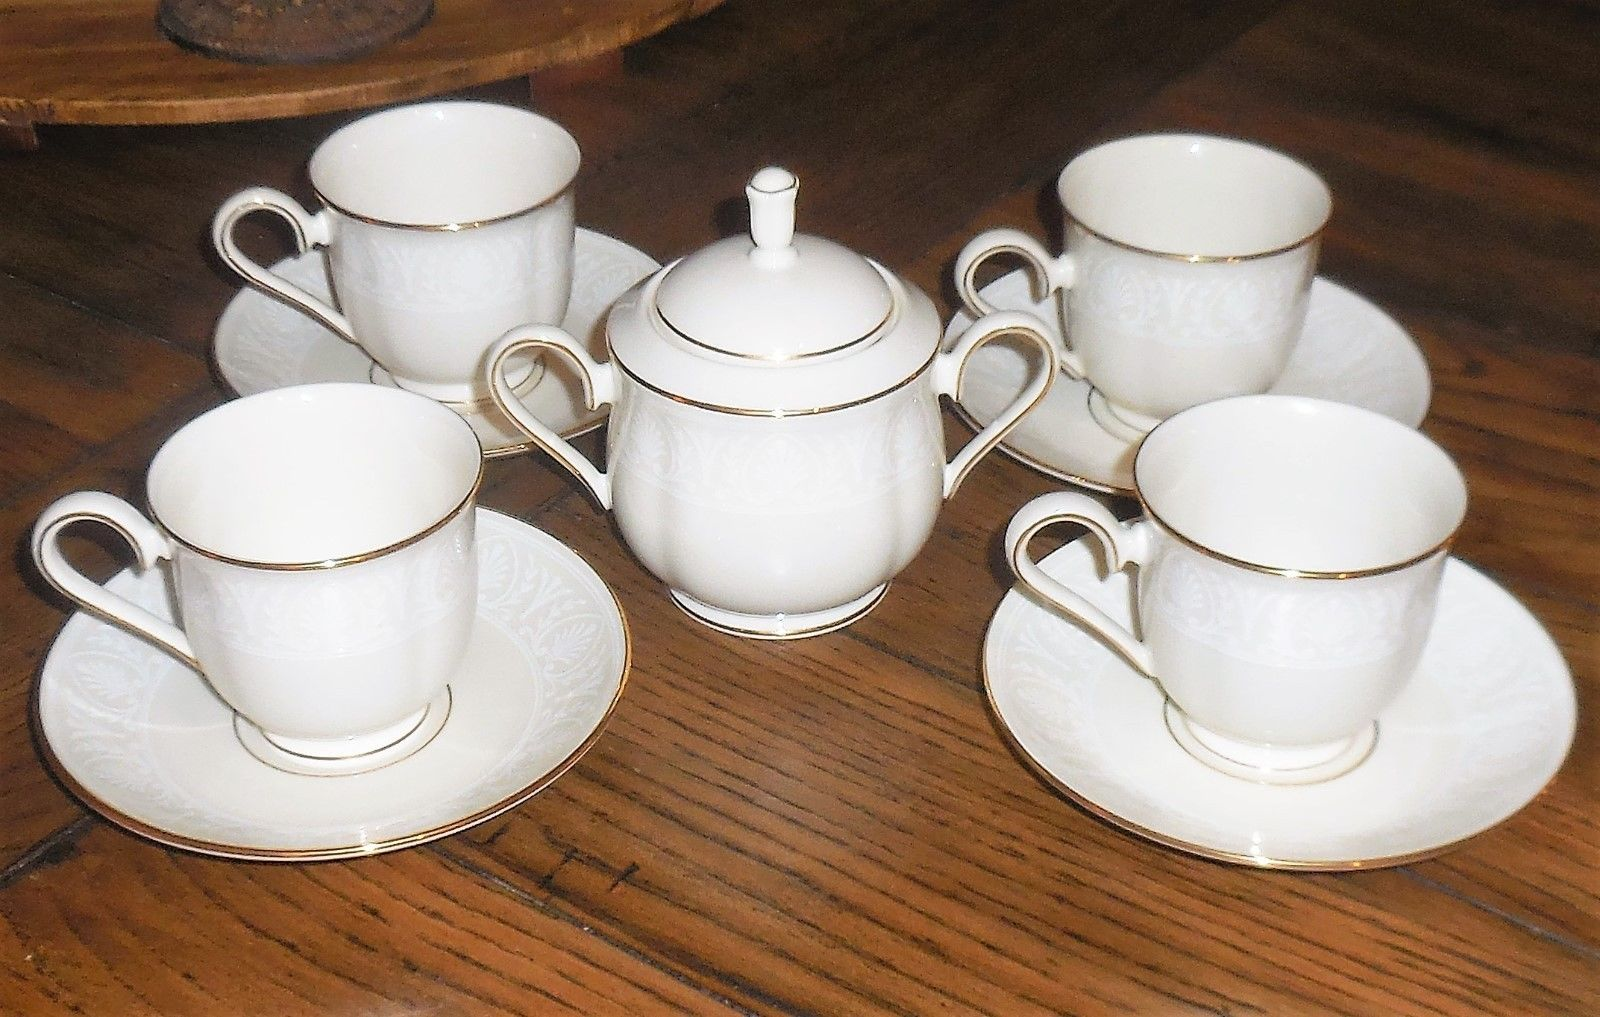 Primary image for 9pc NEW LENOX COURTYARD GOLD Cup & Saucer Set w/ Lidded Sugar Bowl